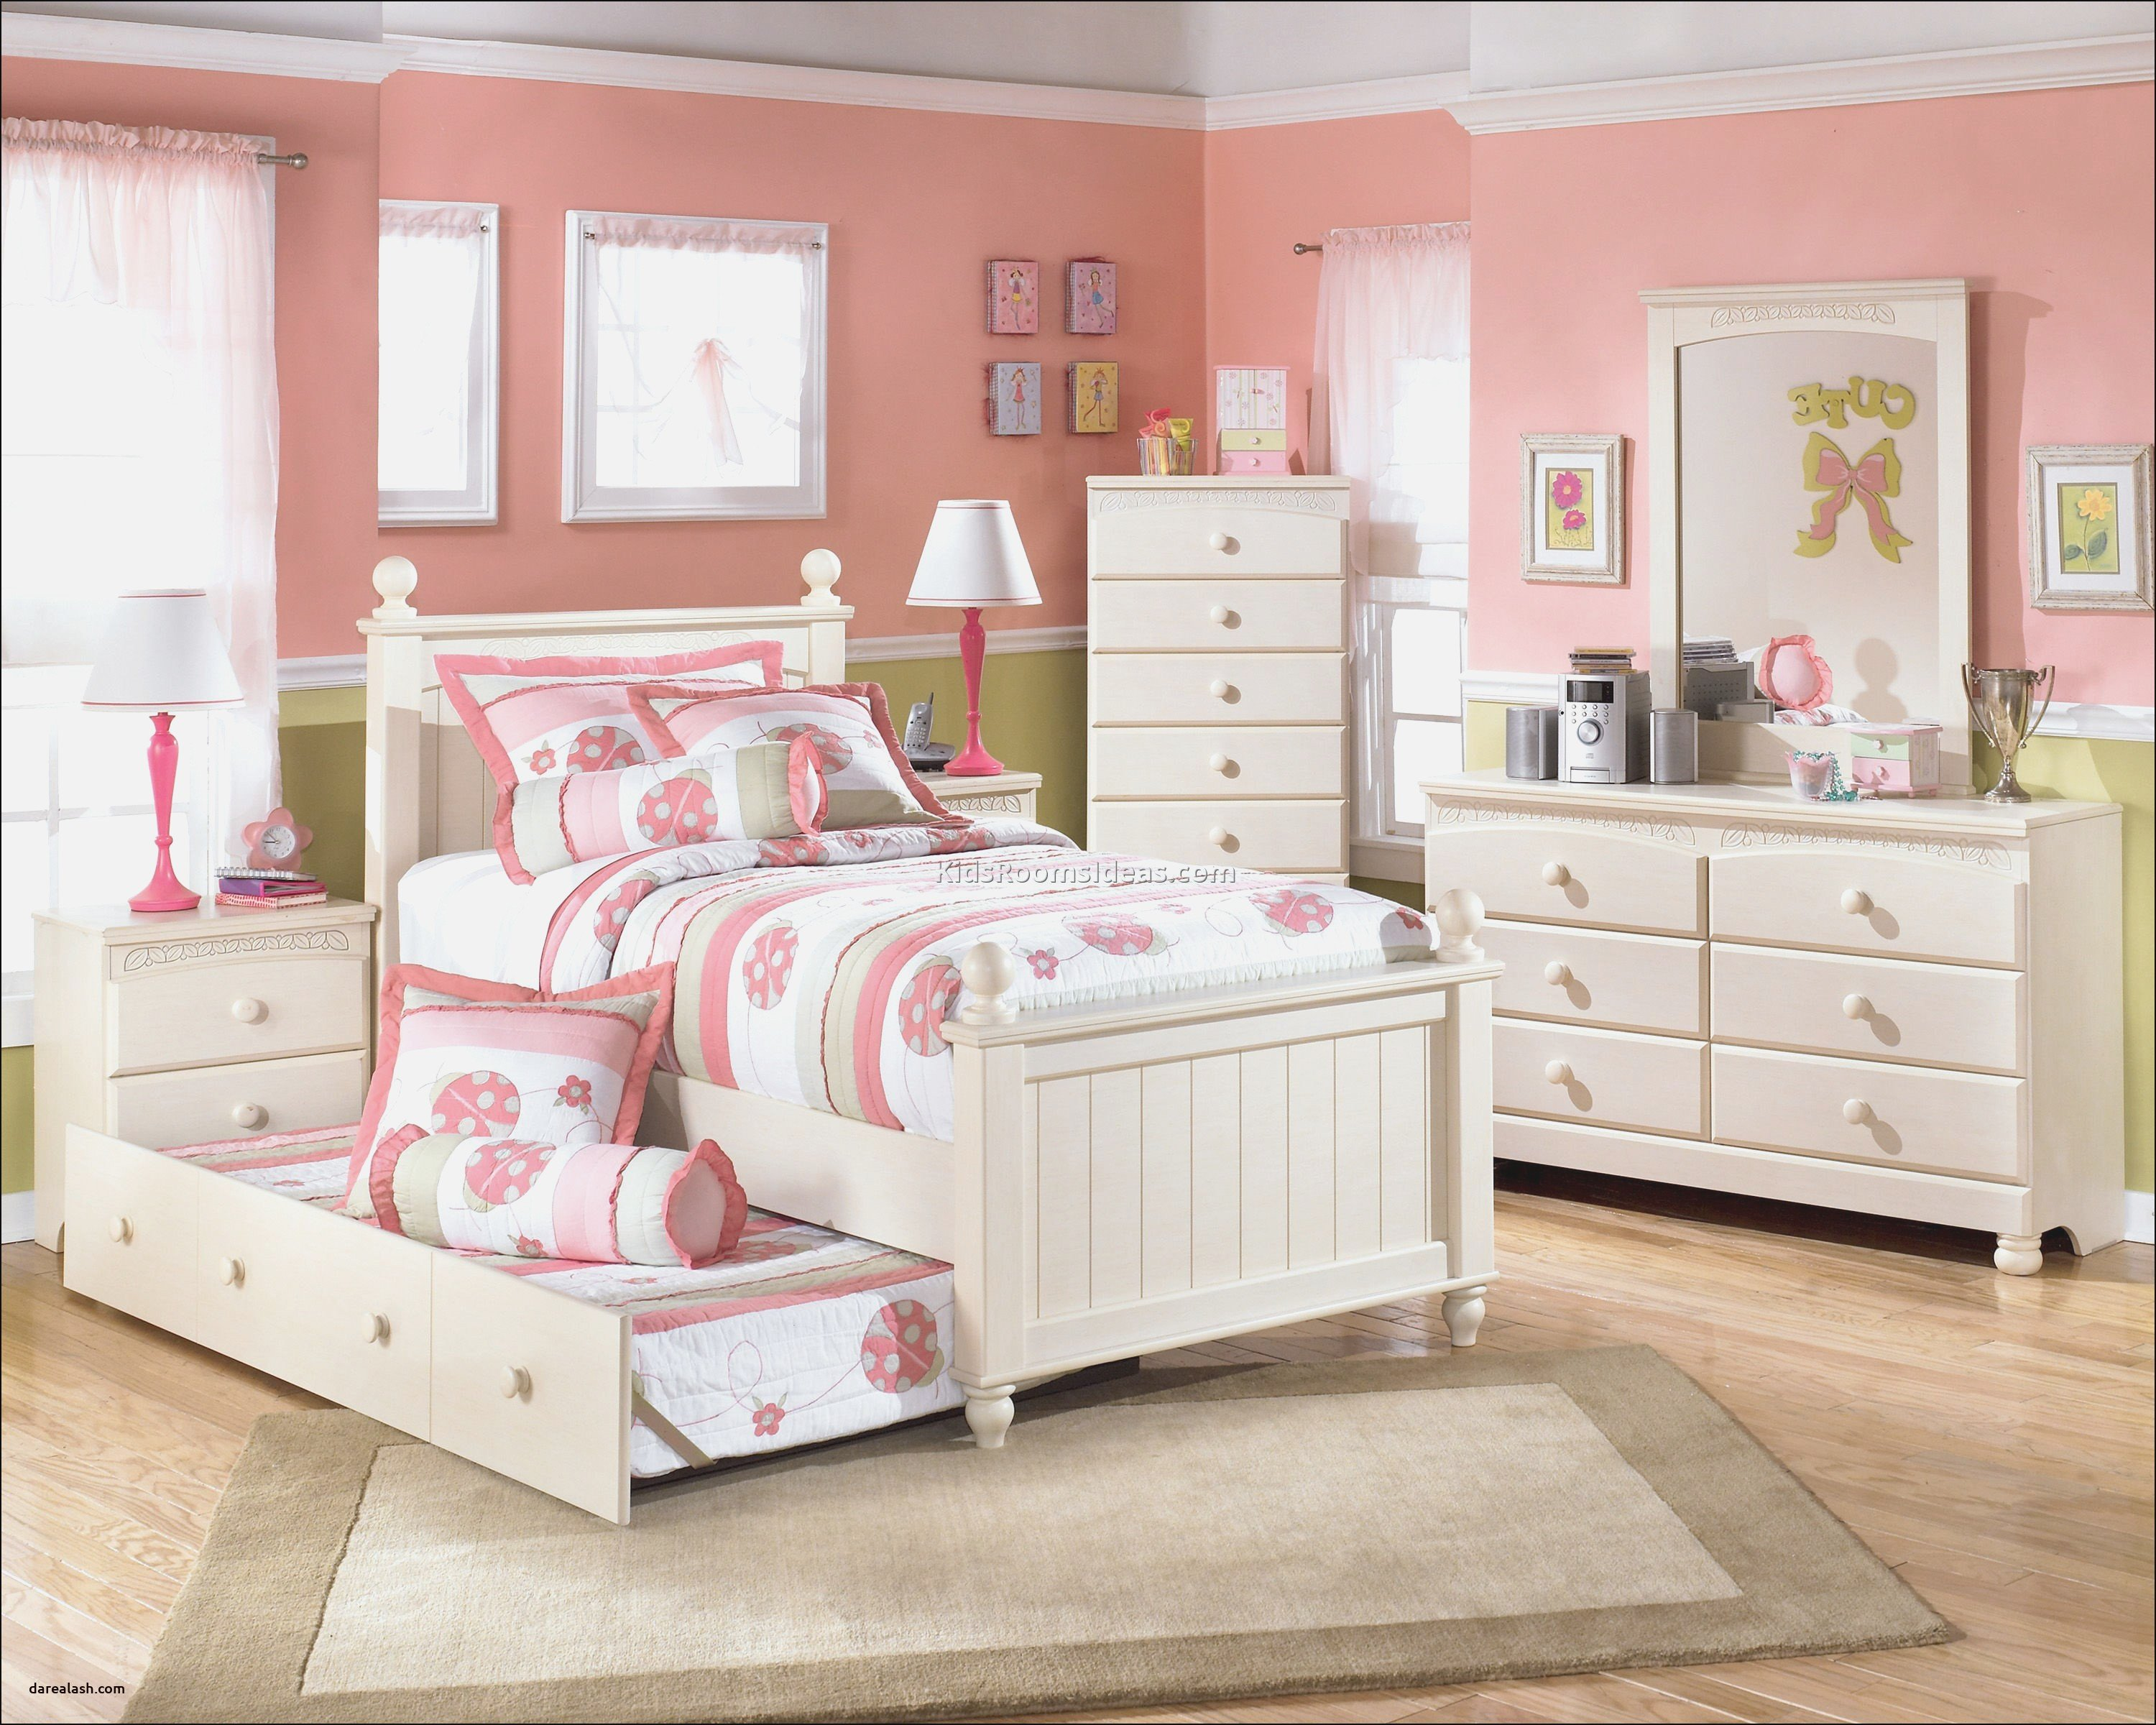 Rooms to Go Kid Bedroom Set Unique Bedroom Charming Roomstogokids with Beautiful Decor for